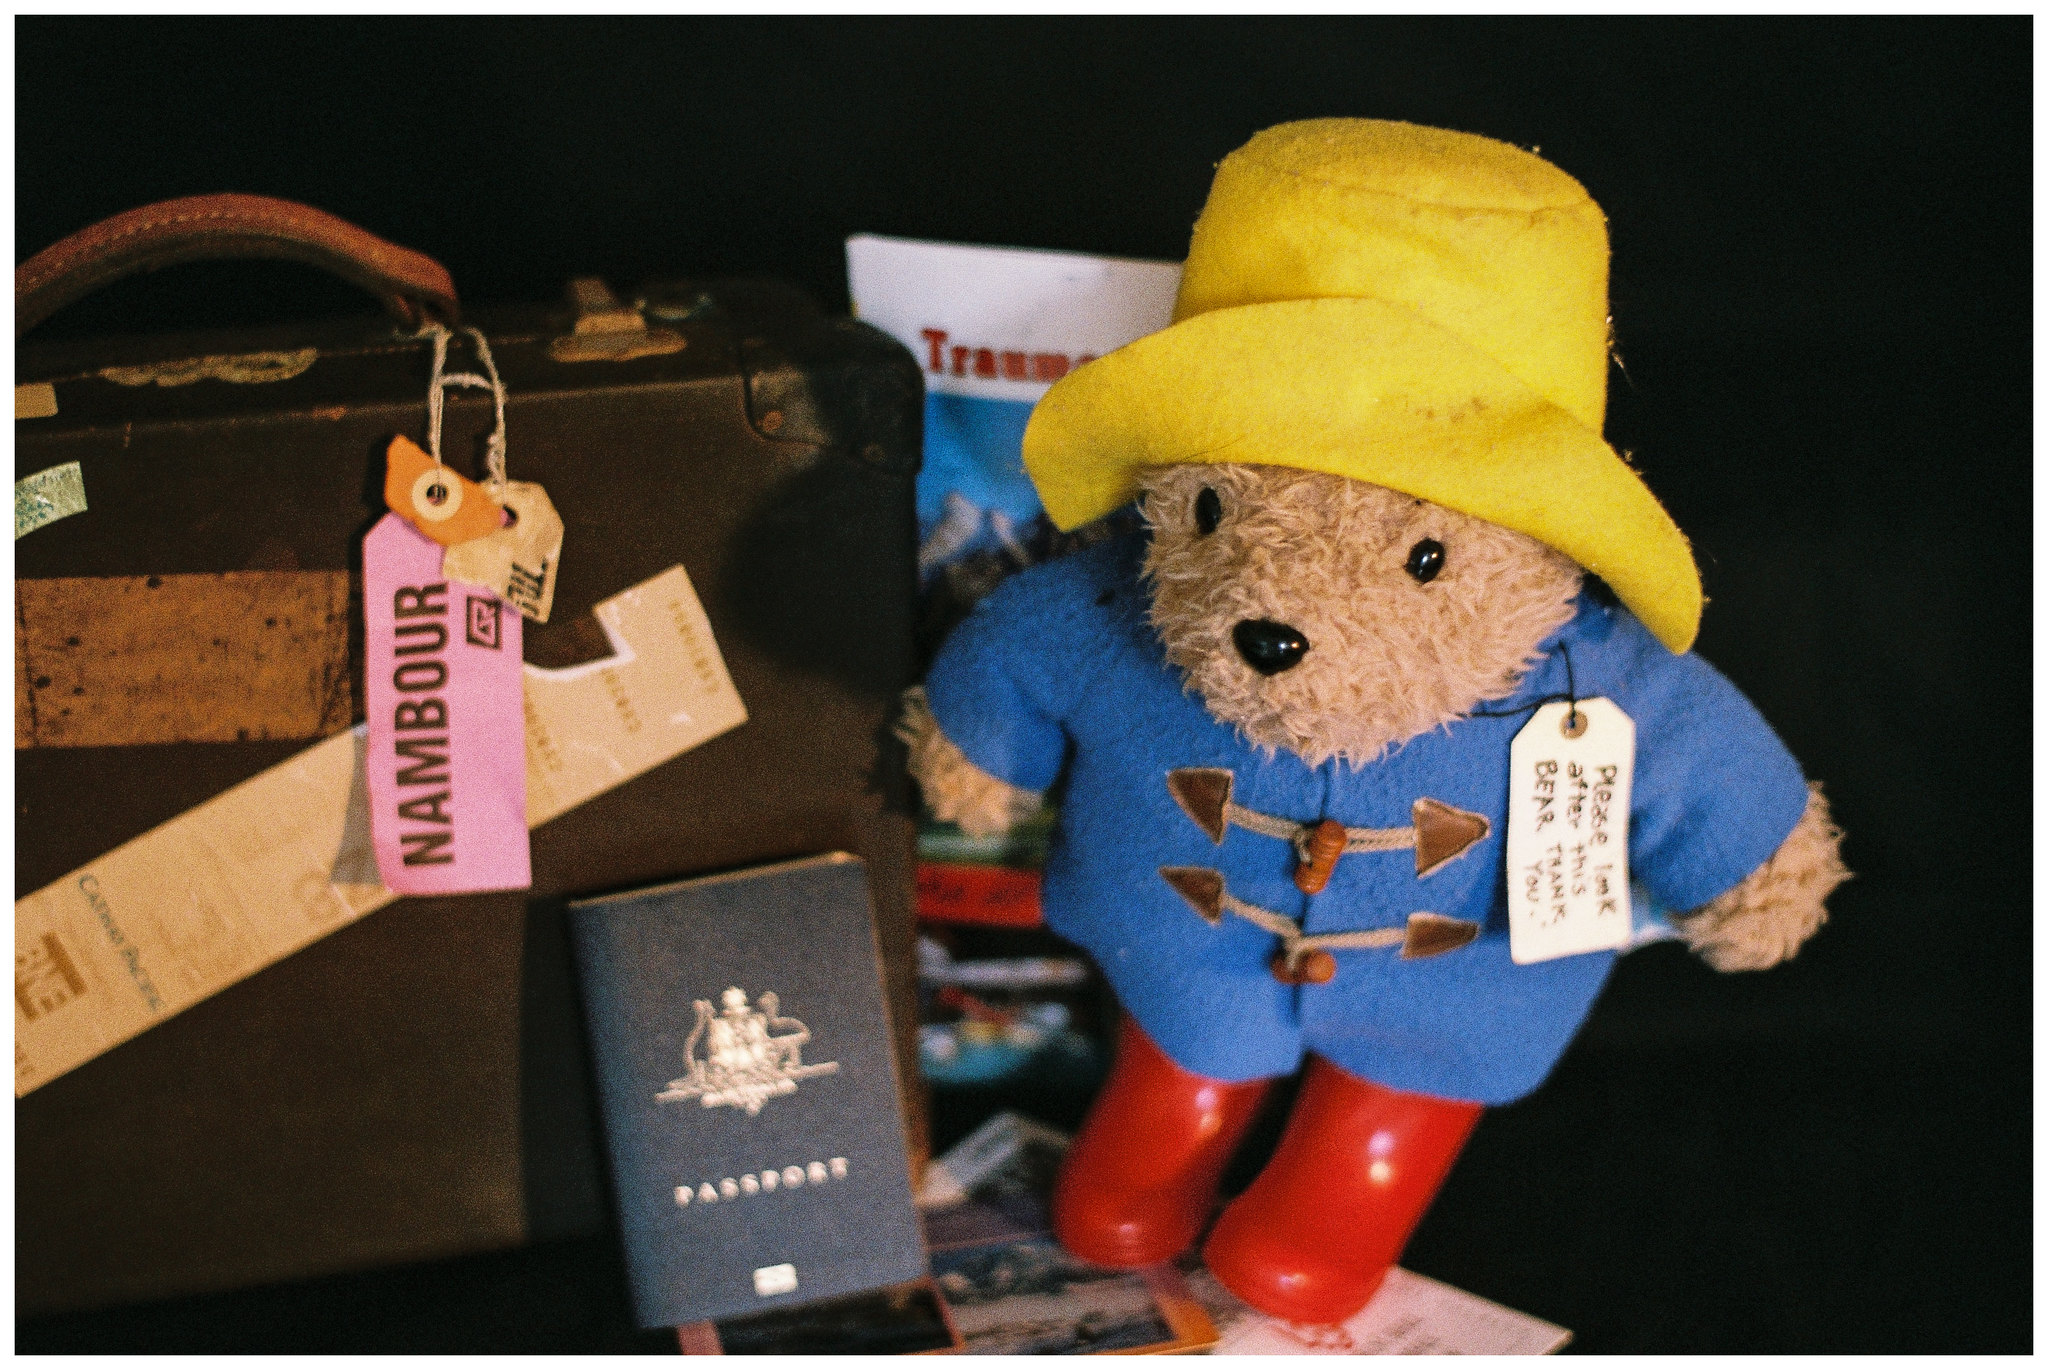 A new exhibition about Paddington Bear - London Airport Transfers